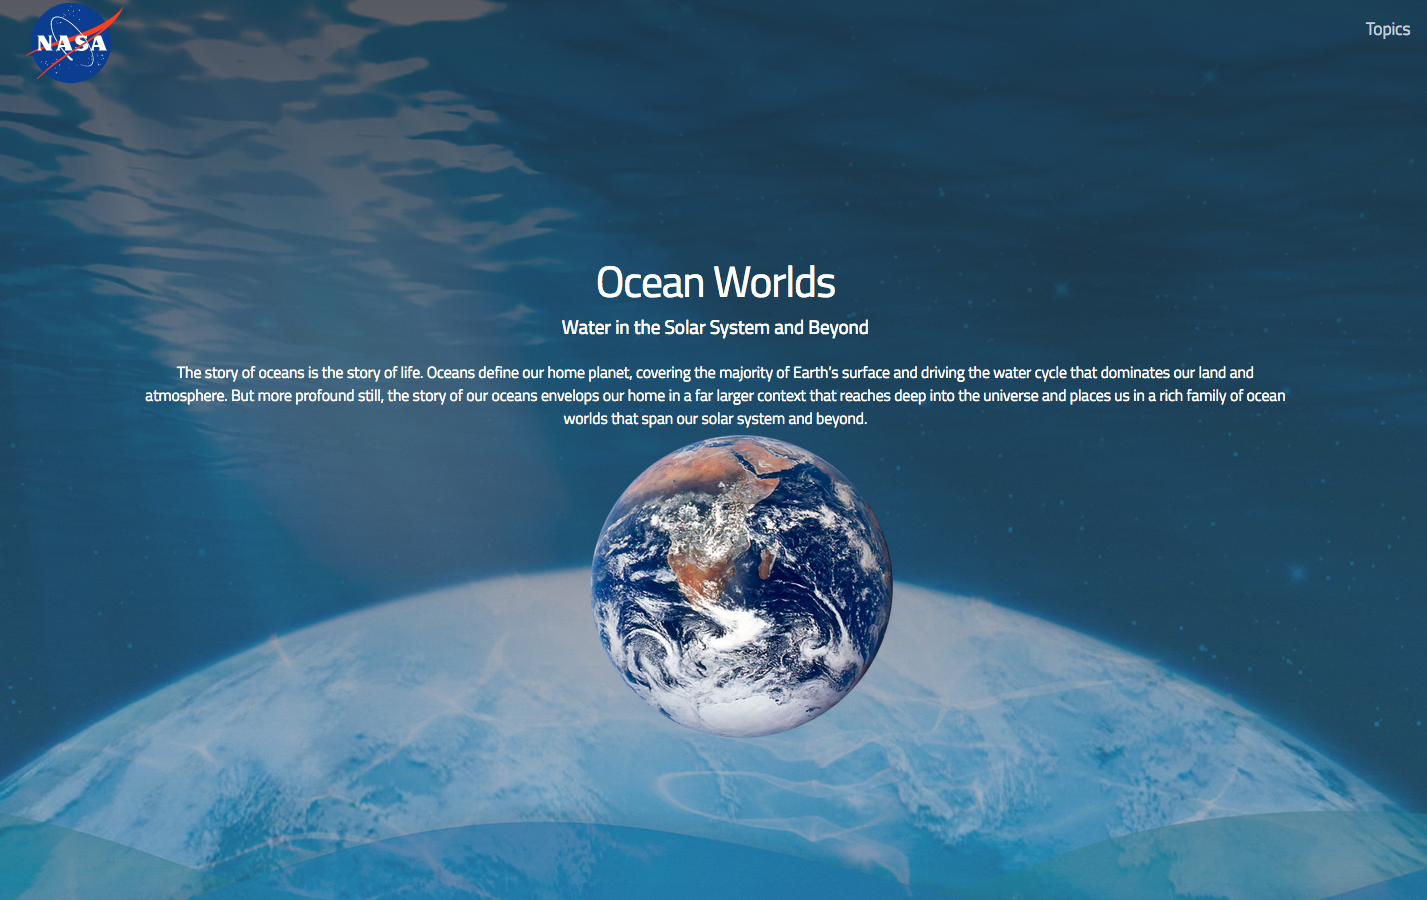 Ocean Worlds: Water in the Solar System and Beyond